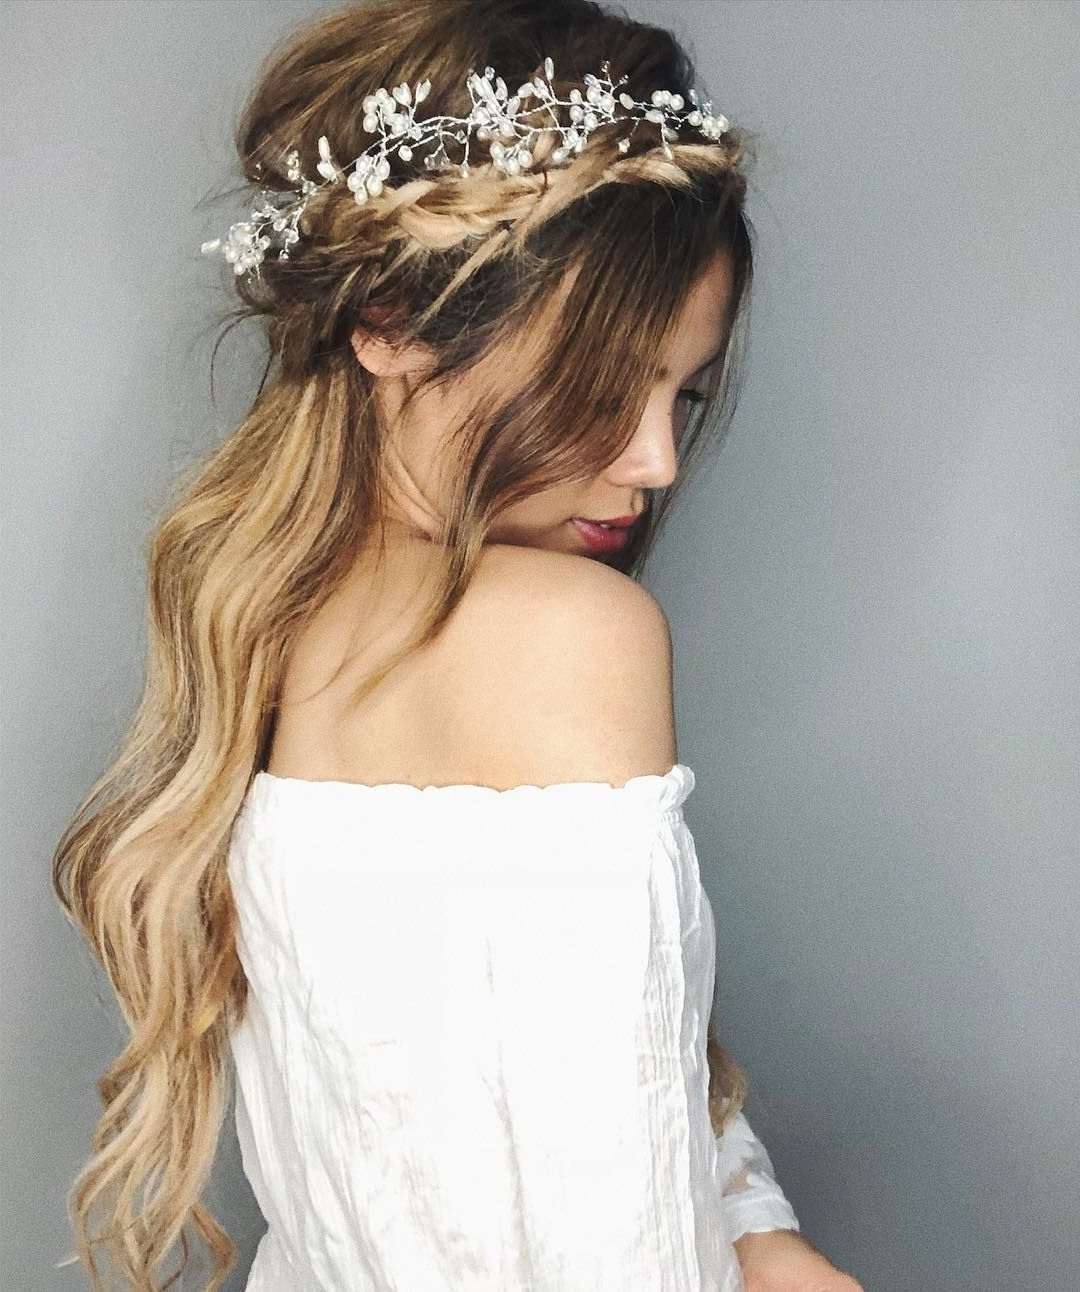 87 Fabulous Wedding Hairstyles For Every Wedding Dress Neckline Intended For Most Current Relaxed Wedding Hairstyles (View 4 of 15)